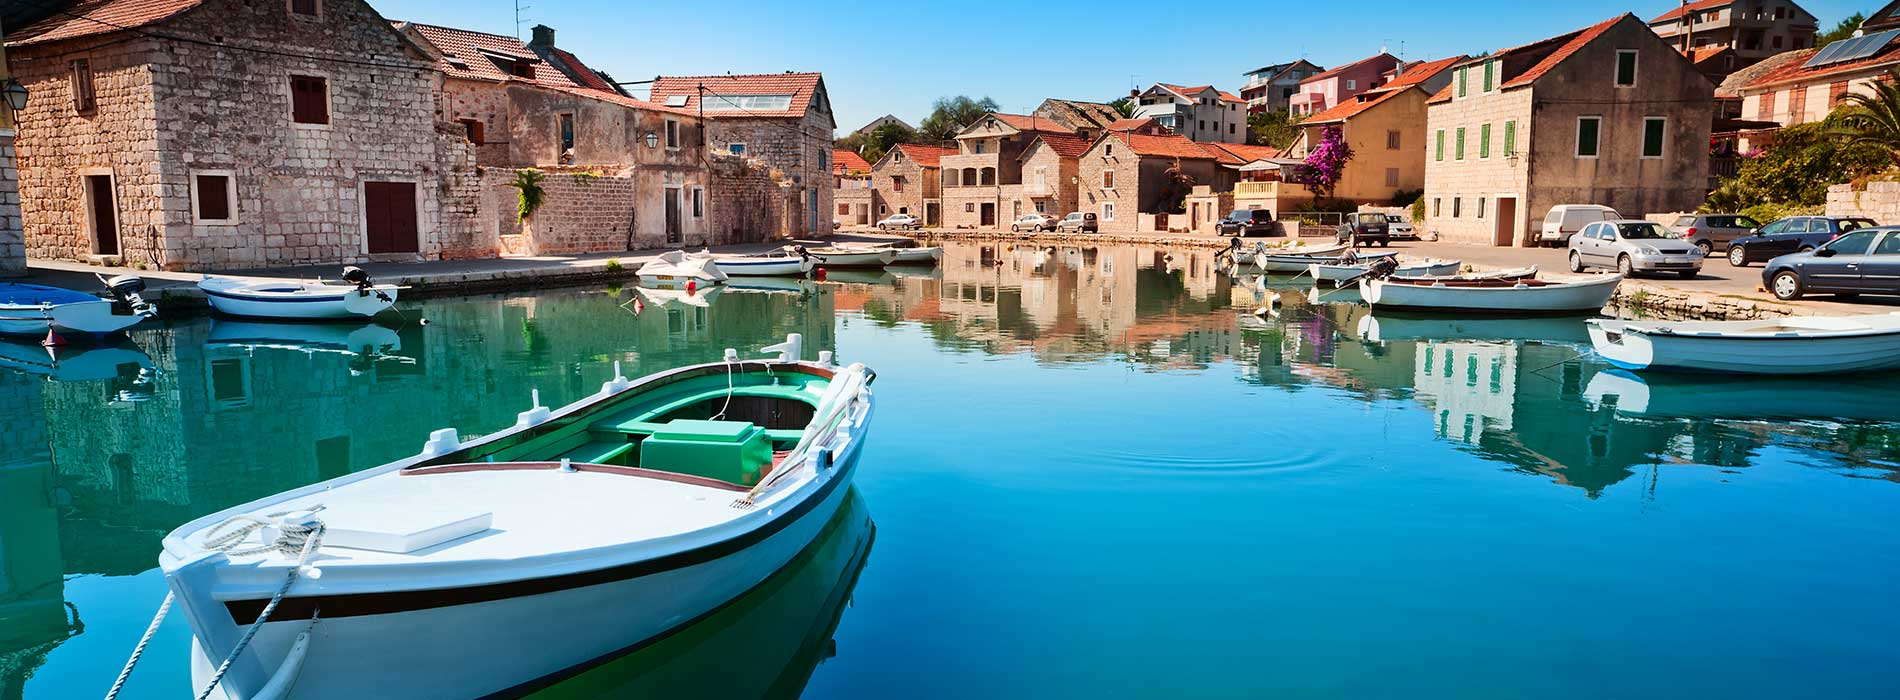 Old harbor at Adriatic sea. Hvar island.jpg